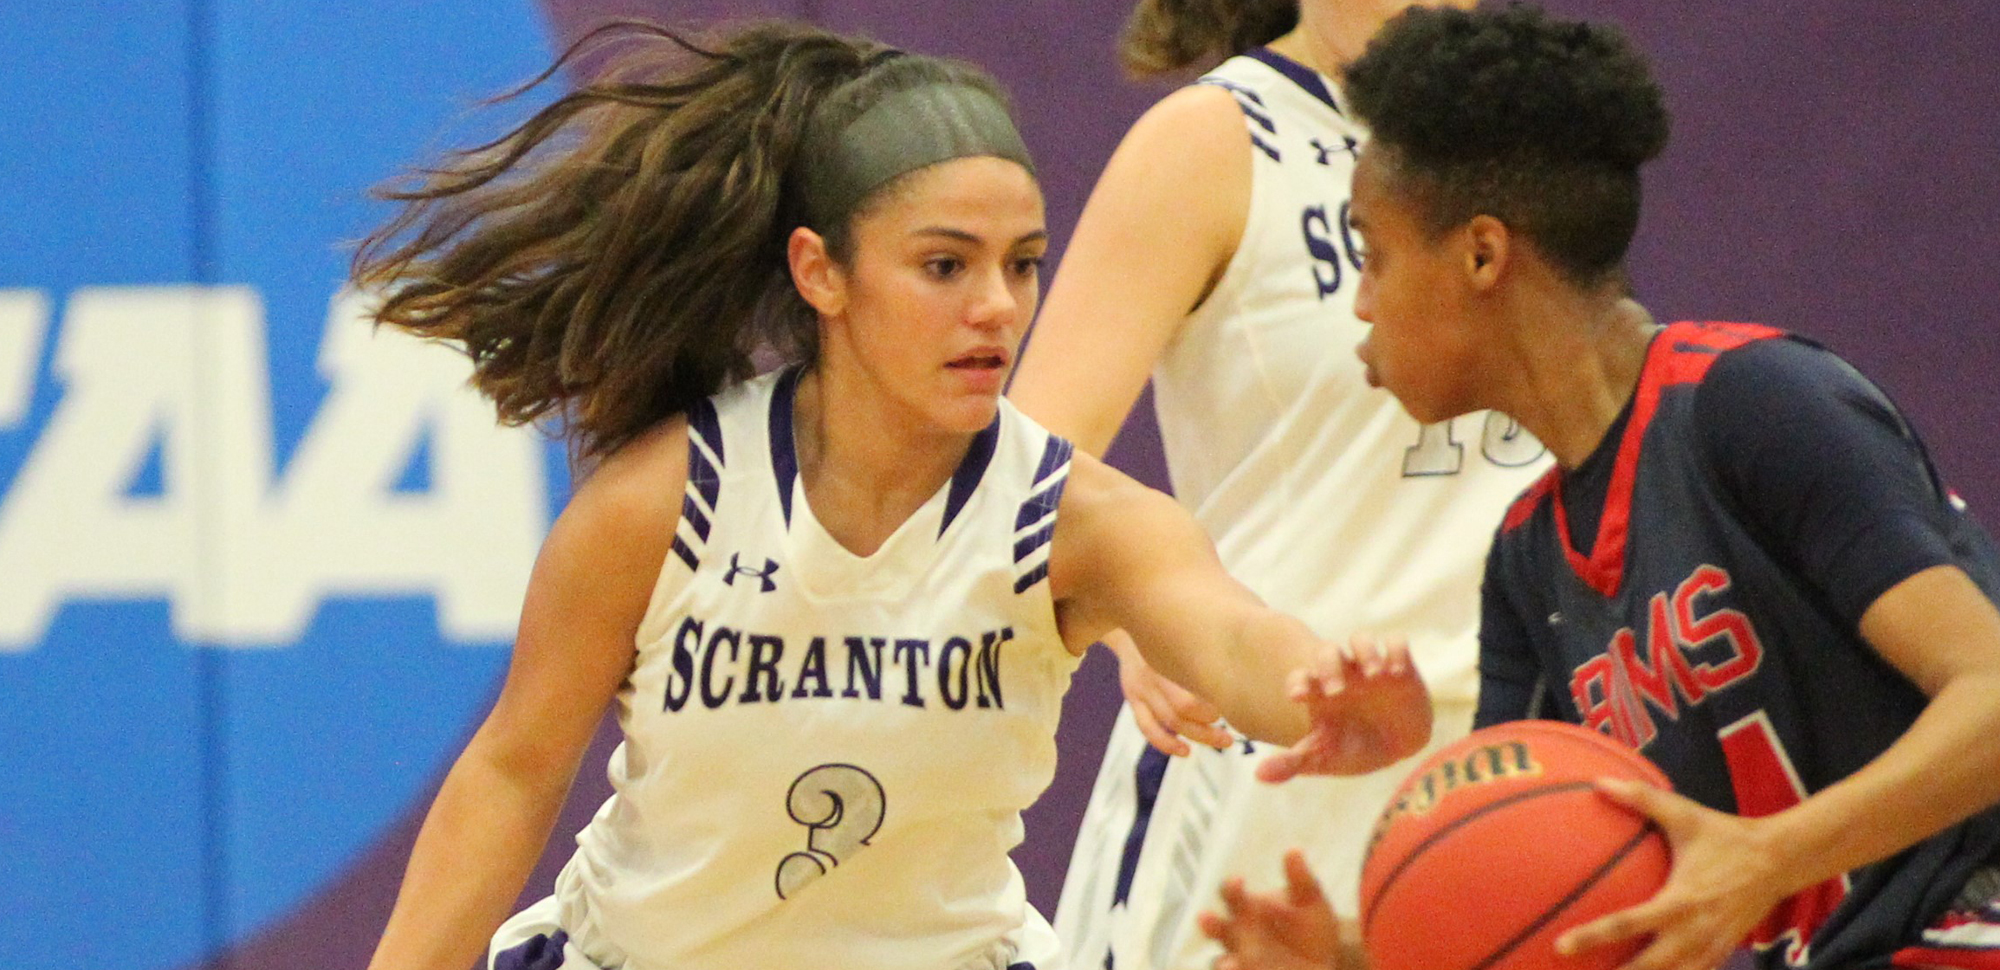 Sophomore Taylor Rodriguez scored in double figures in both games over the weekend in the NCAA Tournament, and for her efforts, she was named The University of Scranton Athlete of the Week on Monday.